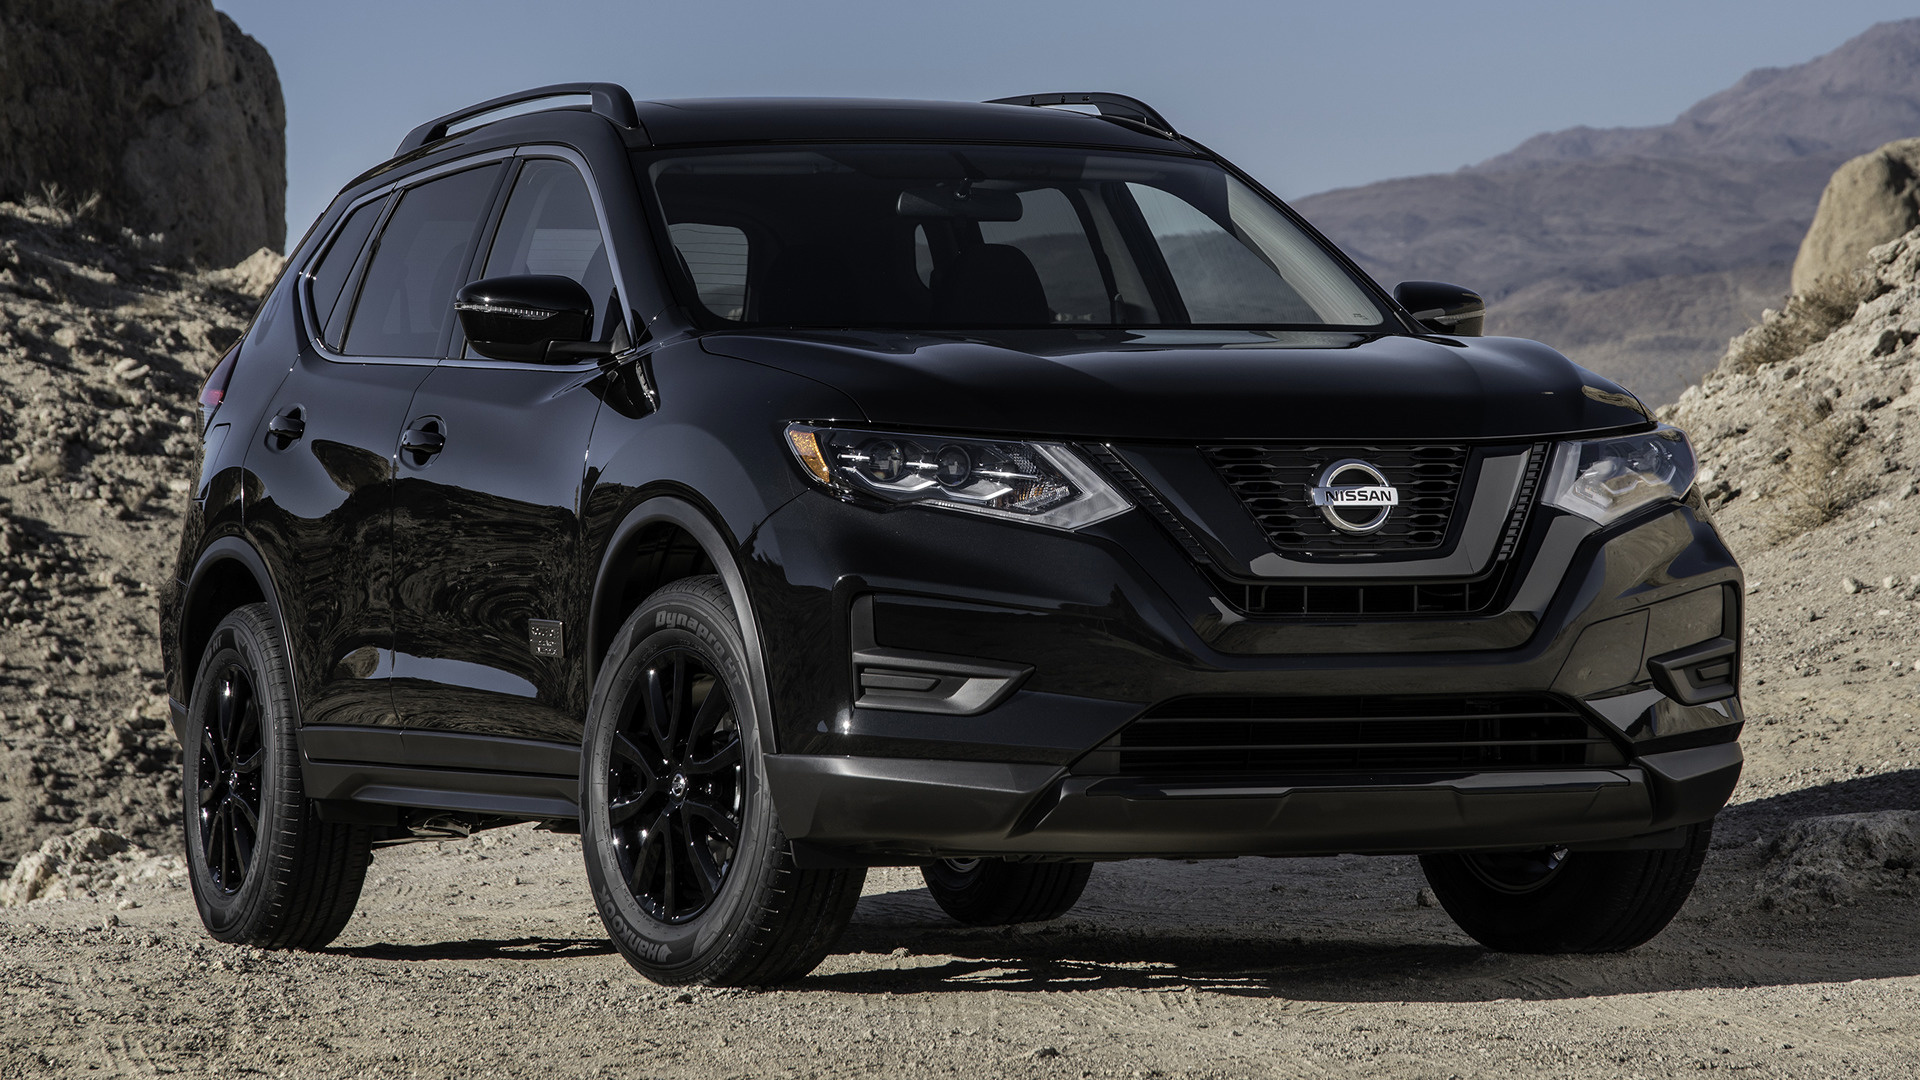 2017 Nissan Rogue One Star Wars Edition - Wallpapers and ...